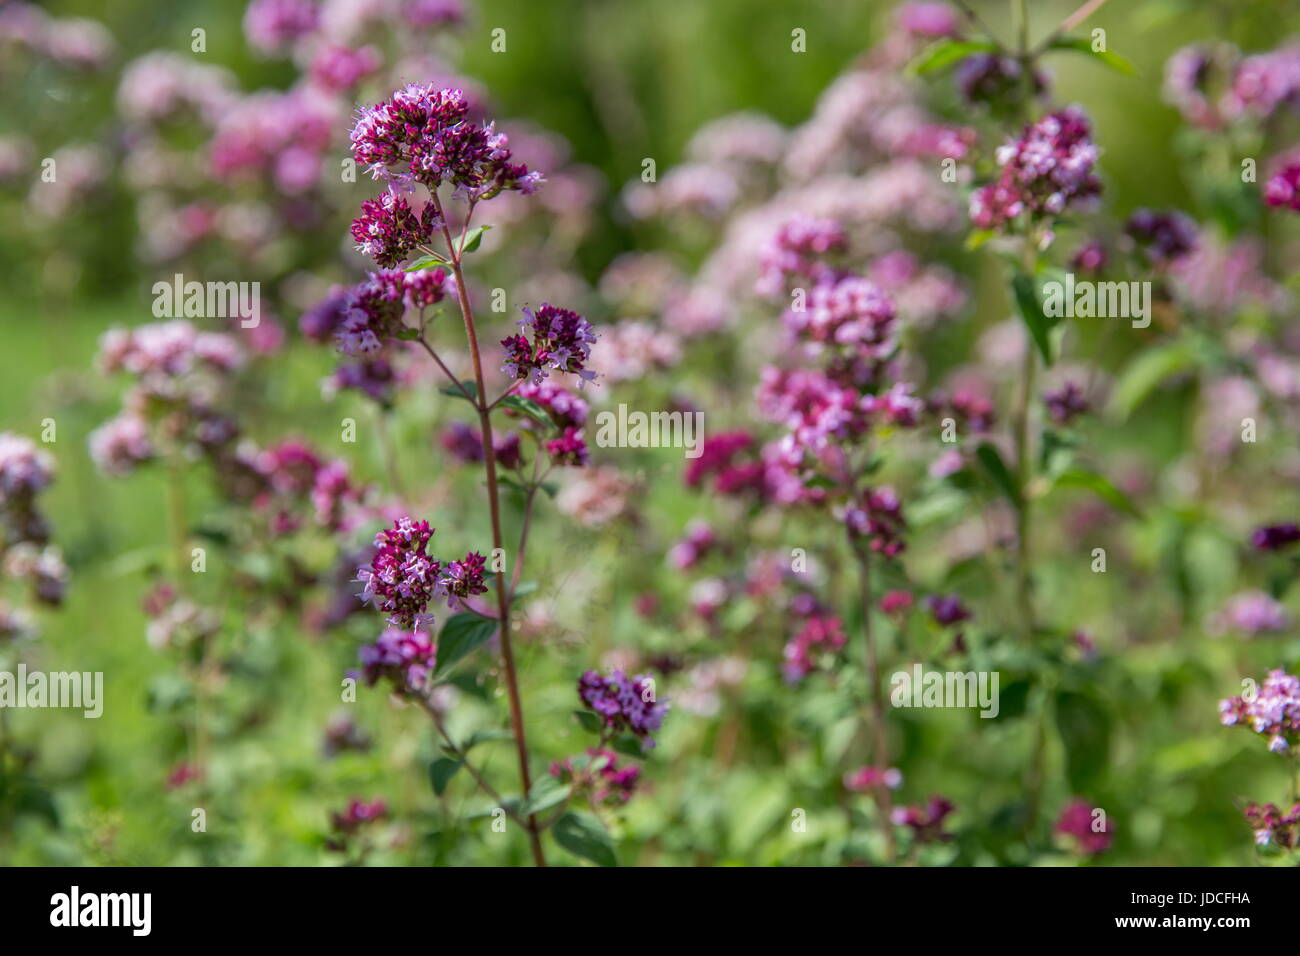 Purple flowers of origanum vulgare or common oregano, wild marjoram. - Stock Image